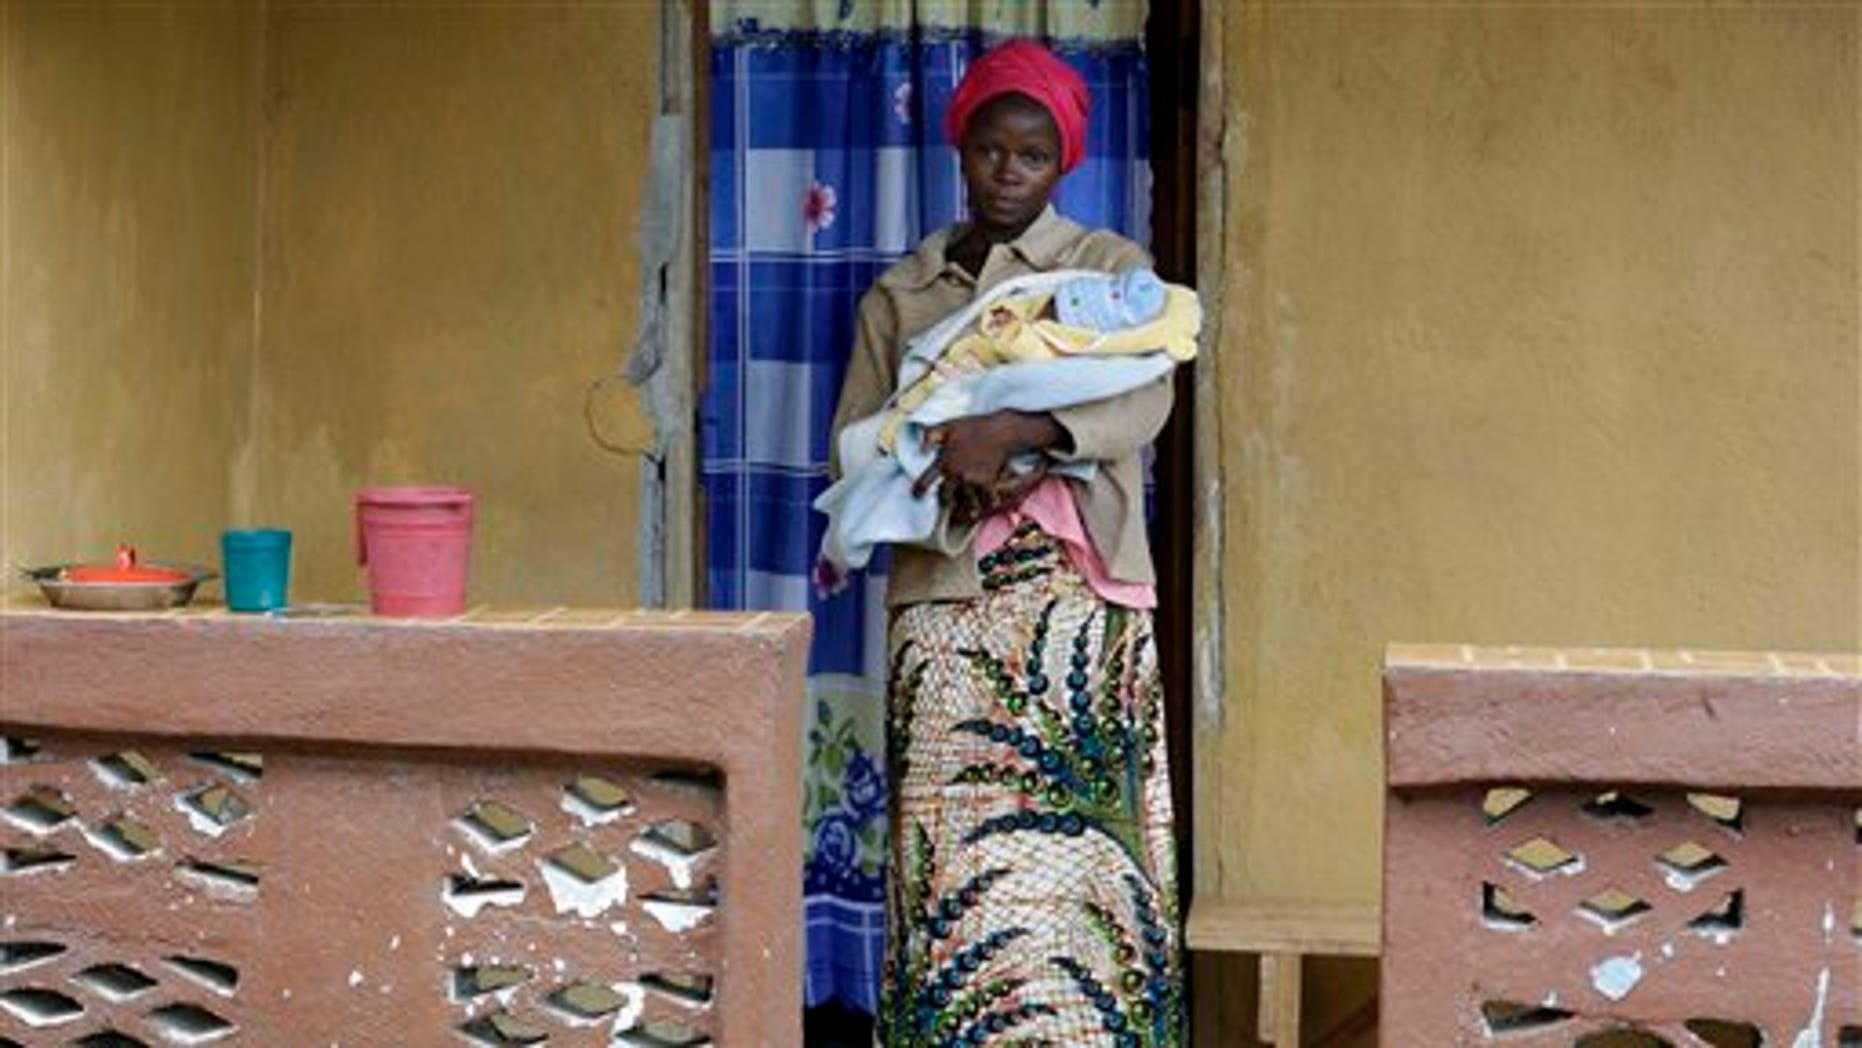 In this Sunday, Aug. 16, 2015 file photo, Ebola survivor Victoria Yillia stands with her newborn son Barnabas outside her home in Kenema, on the outskirts of Freetown, Sierra Leone. (AP Photo/Sunday Alamba file)